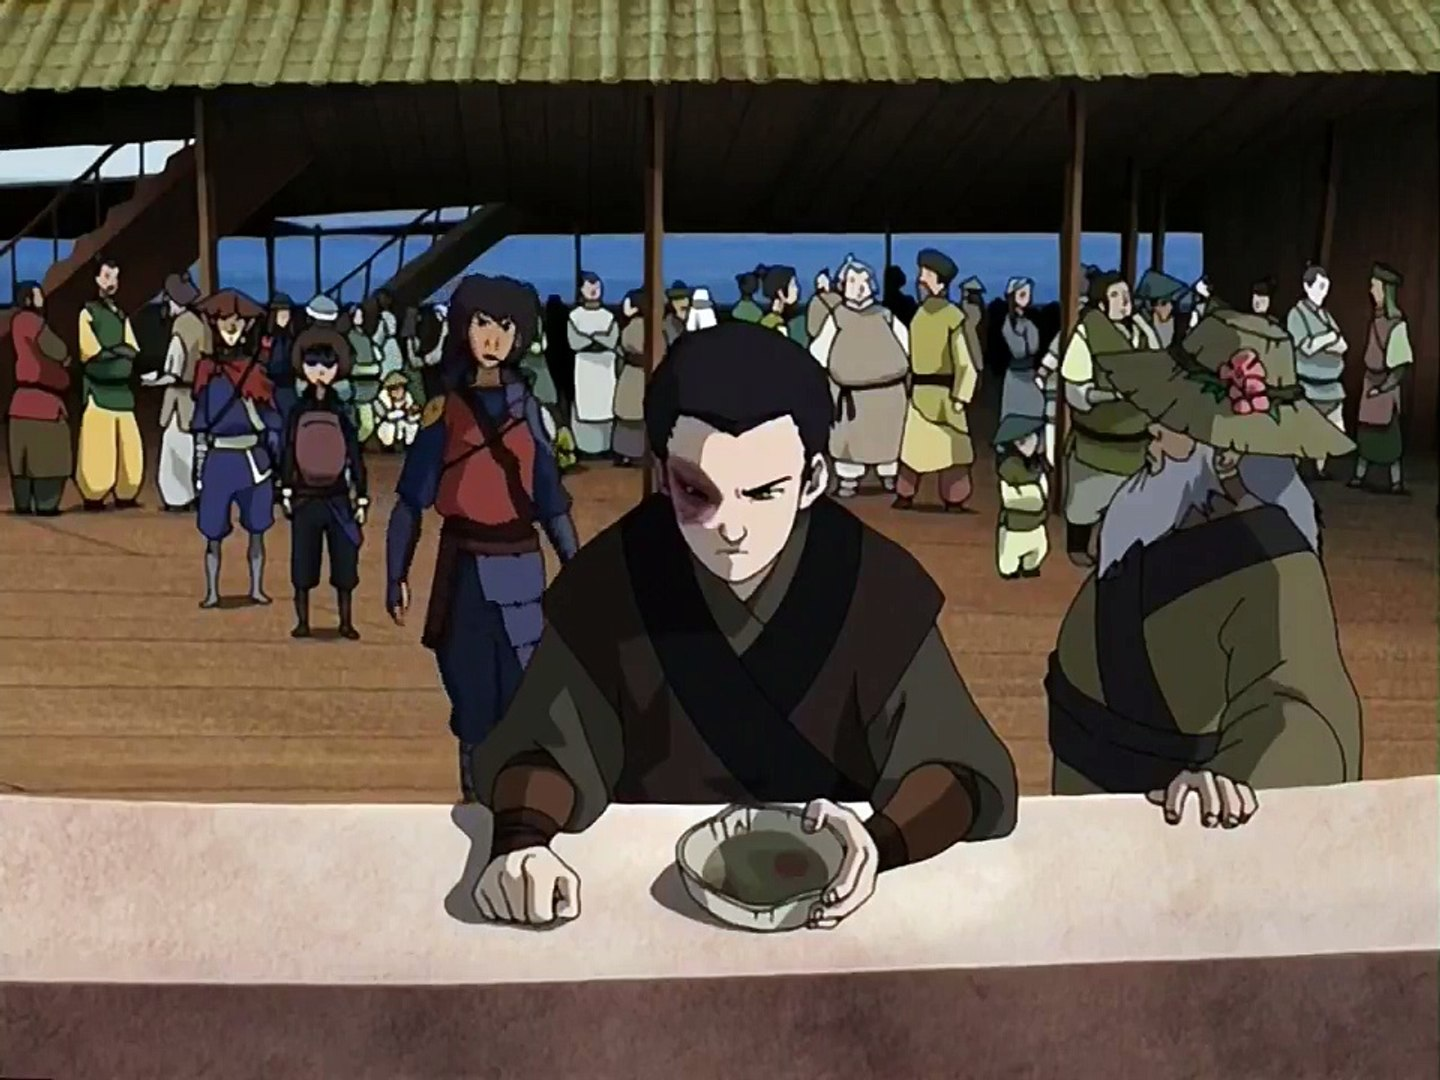 Avatar the last airbender season 3 episode 20 pixa club